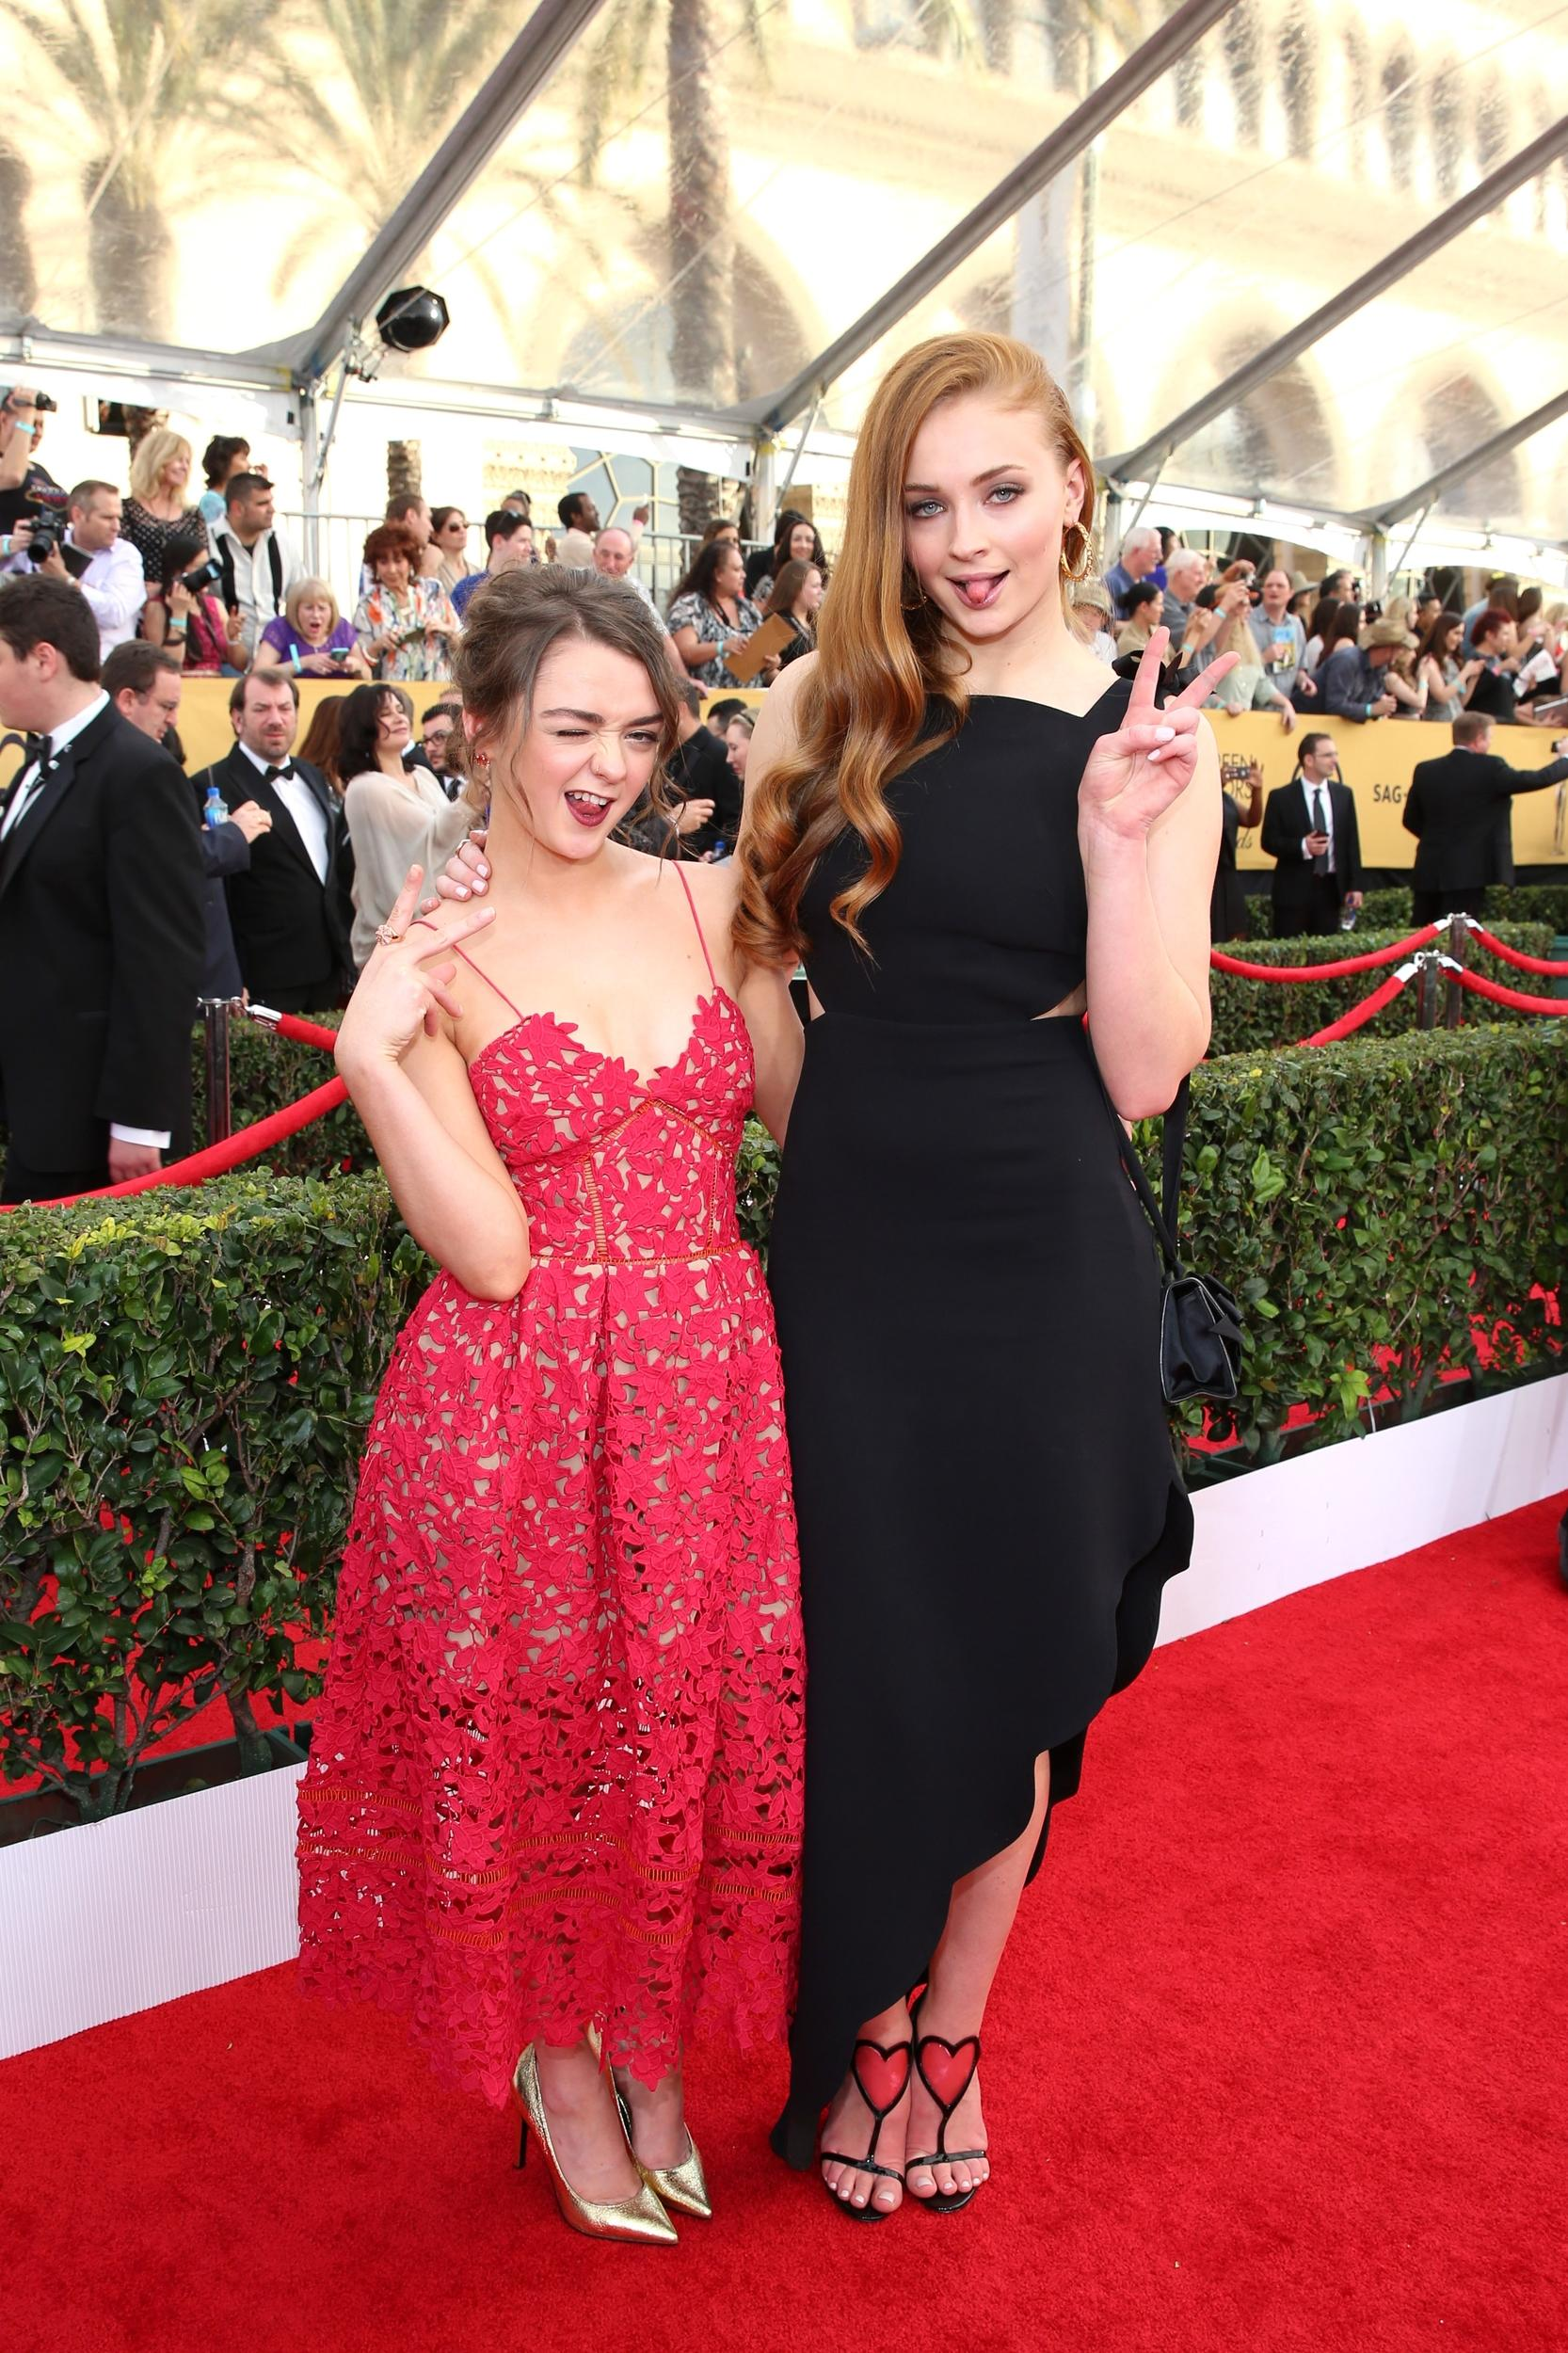 Maisie Williams, left, and Sophie Turner arrive at the 21st annual Screen Actors Guild Awards at the Shrine Auditorioum on Sunday, Jan. 25, 2015, in Los Angeles. (Photo by Brian Dowling/Invision for People Magazine/AP Images)